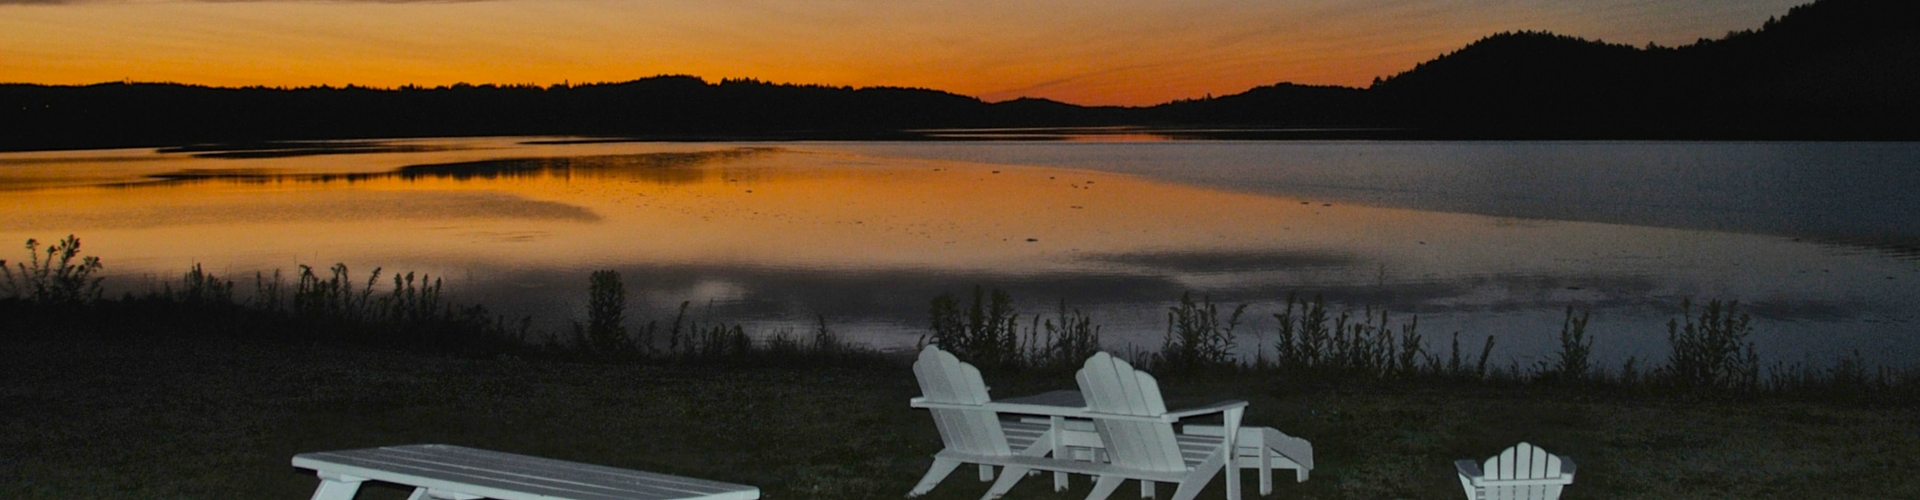 Located On The Historic Machias River In Maine Inn Formerly Motor Offers Comfortable Accommodations With Scenic